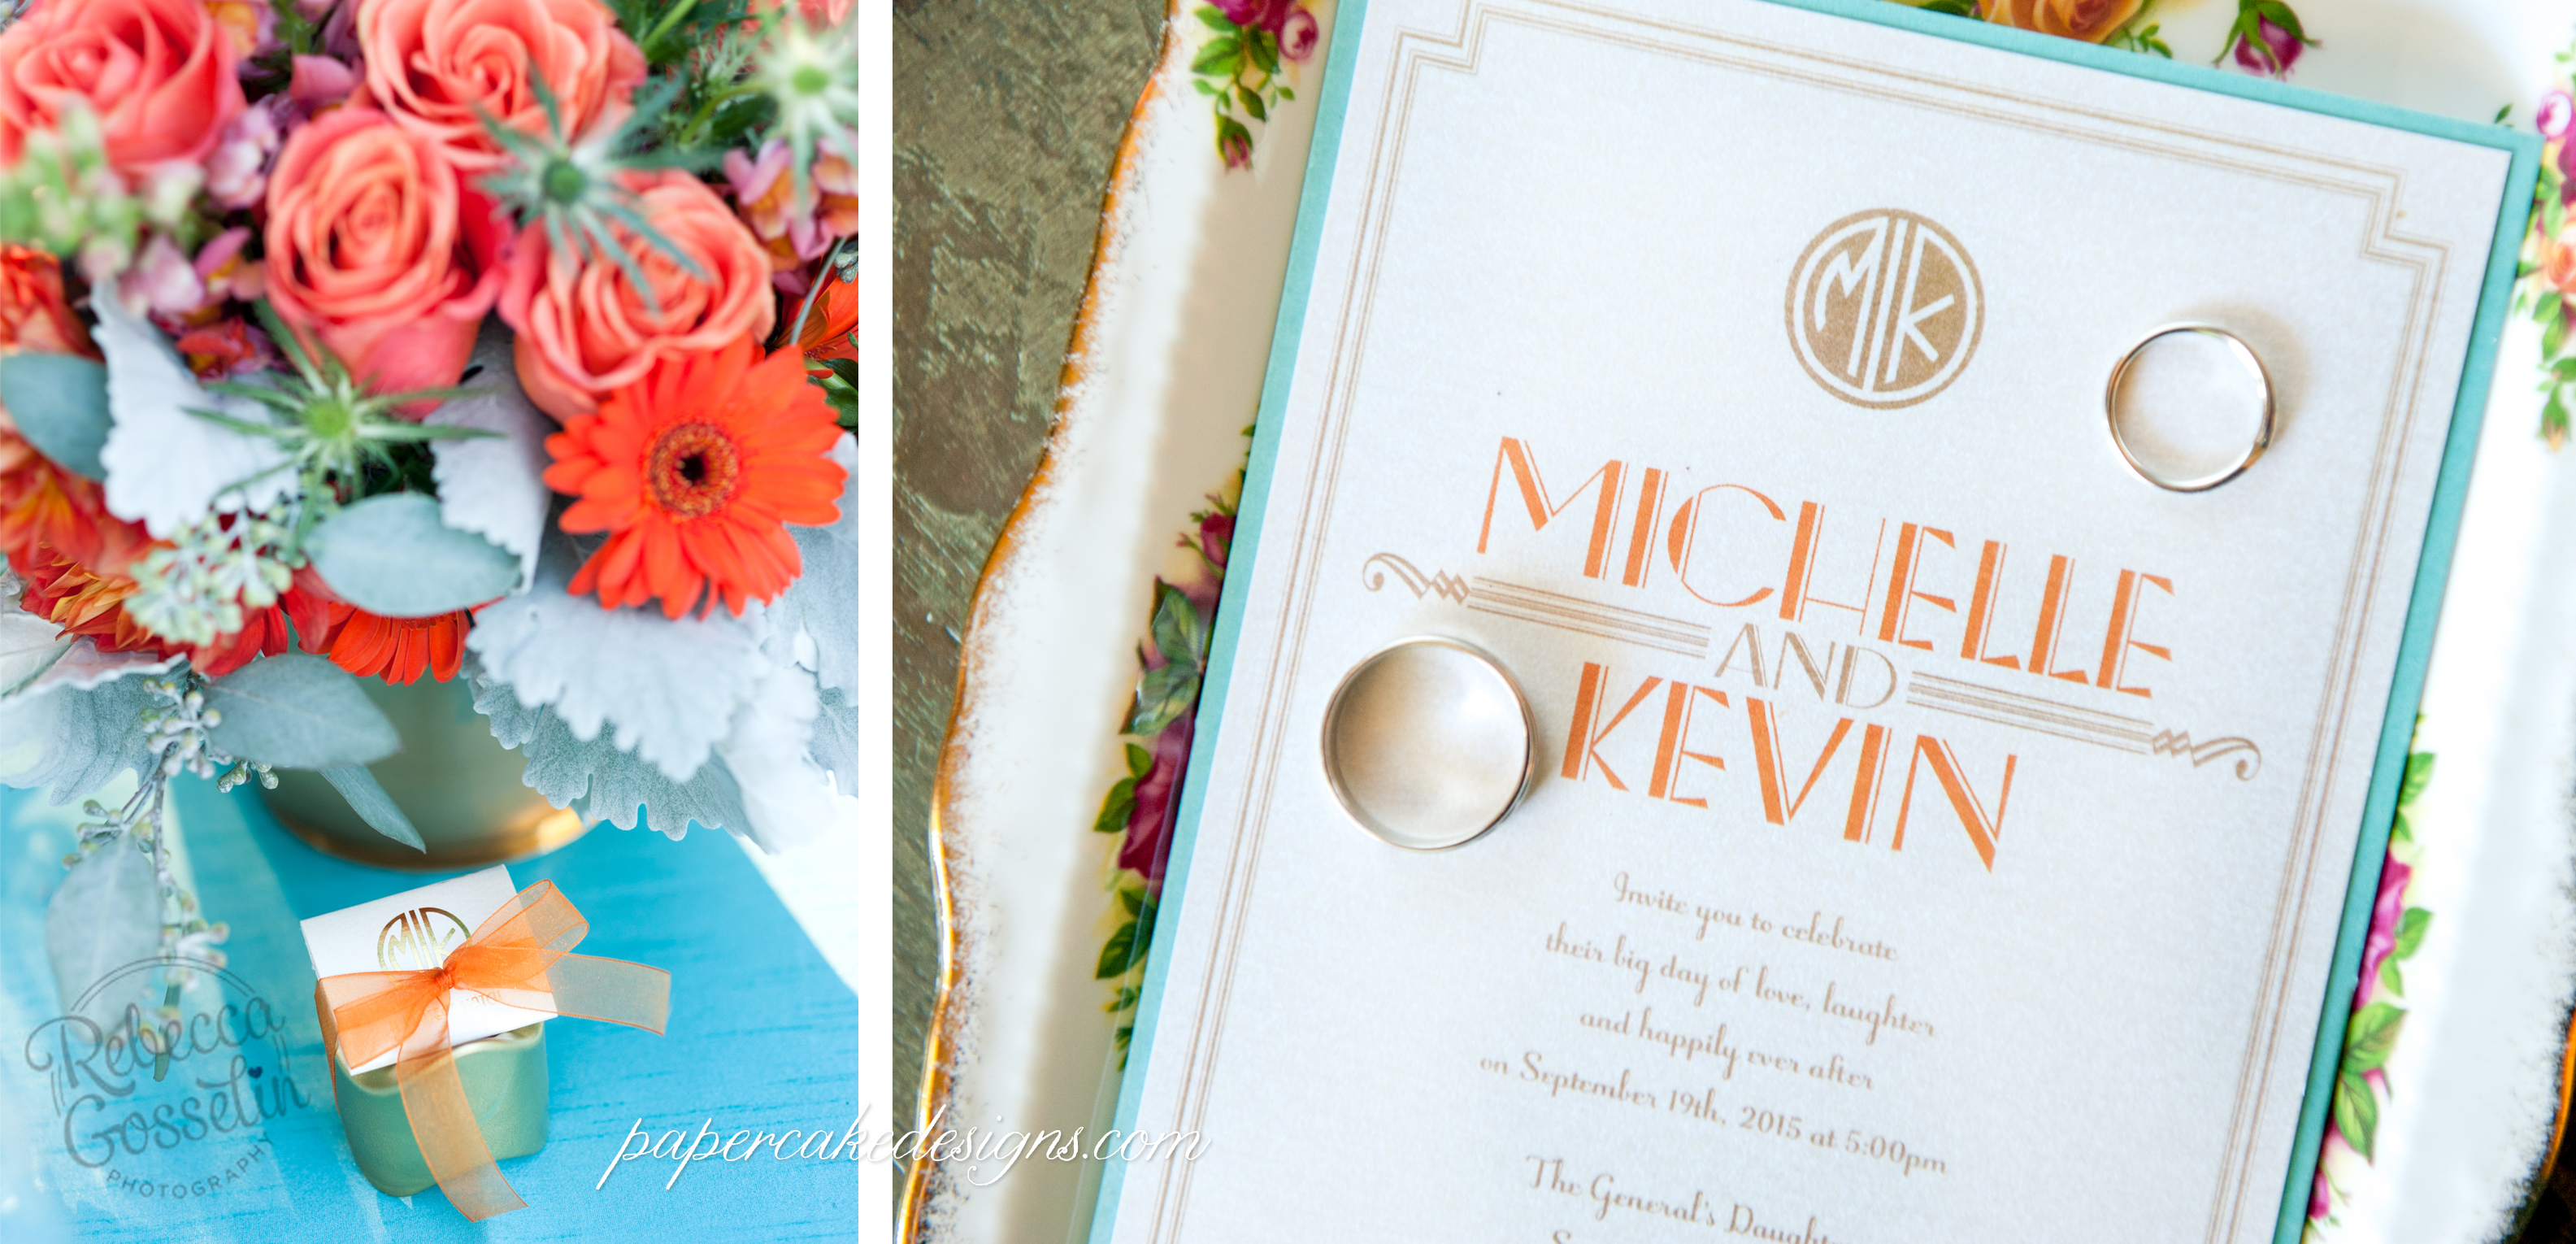 Real Wedding] A Colorful Great Gatsby Inspired Event – papercake designs